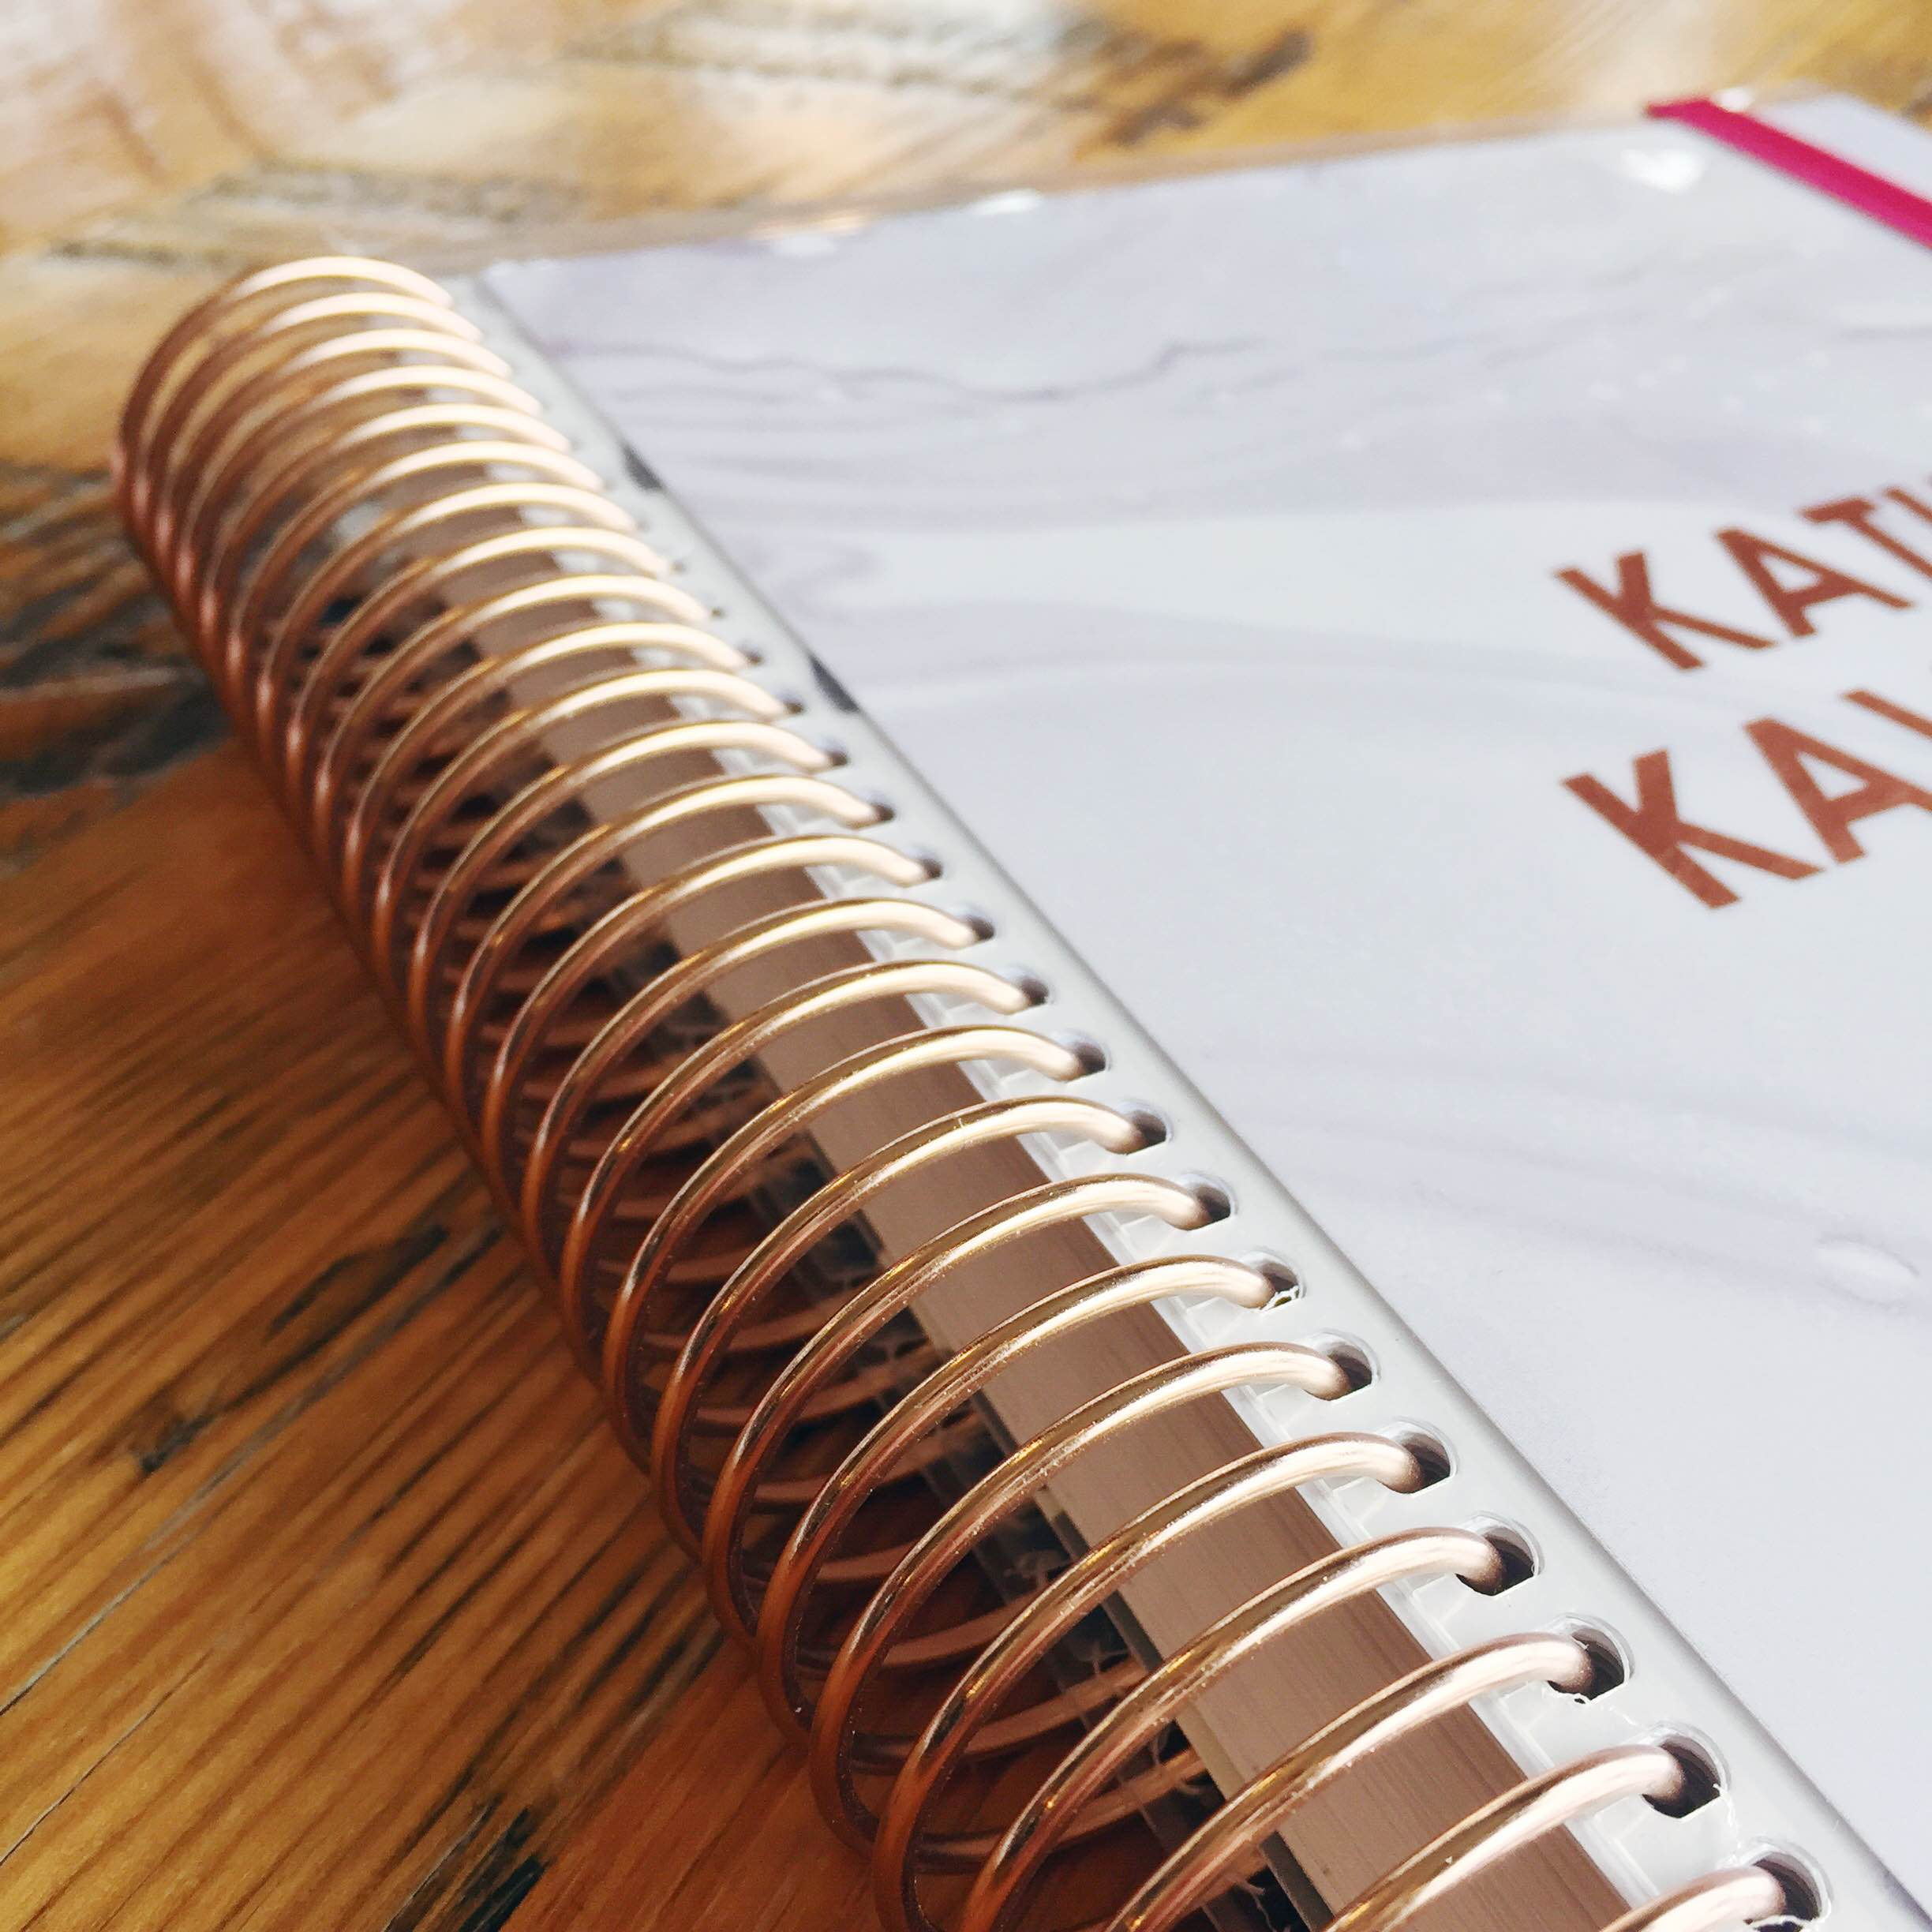 7 Things Planner Geek Moms Love